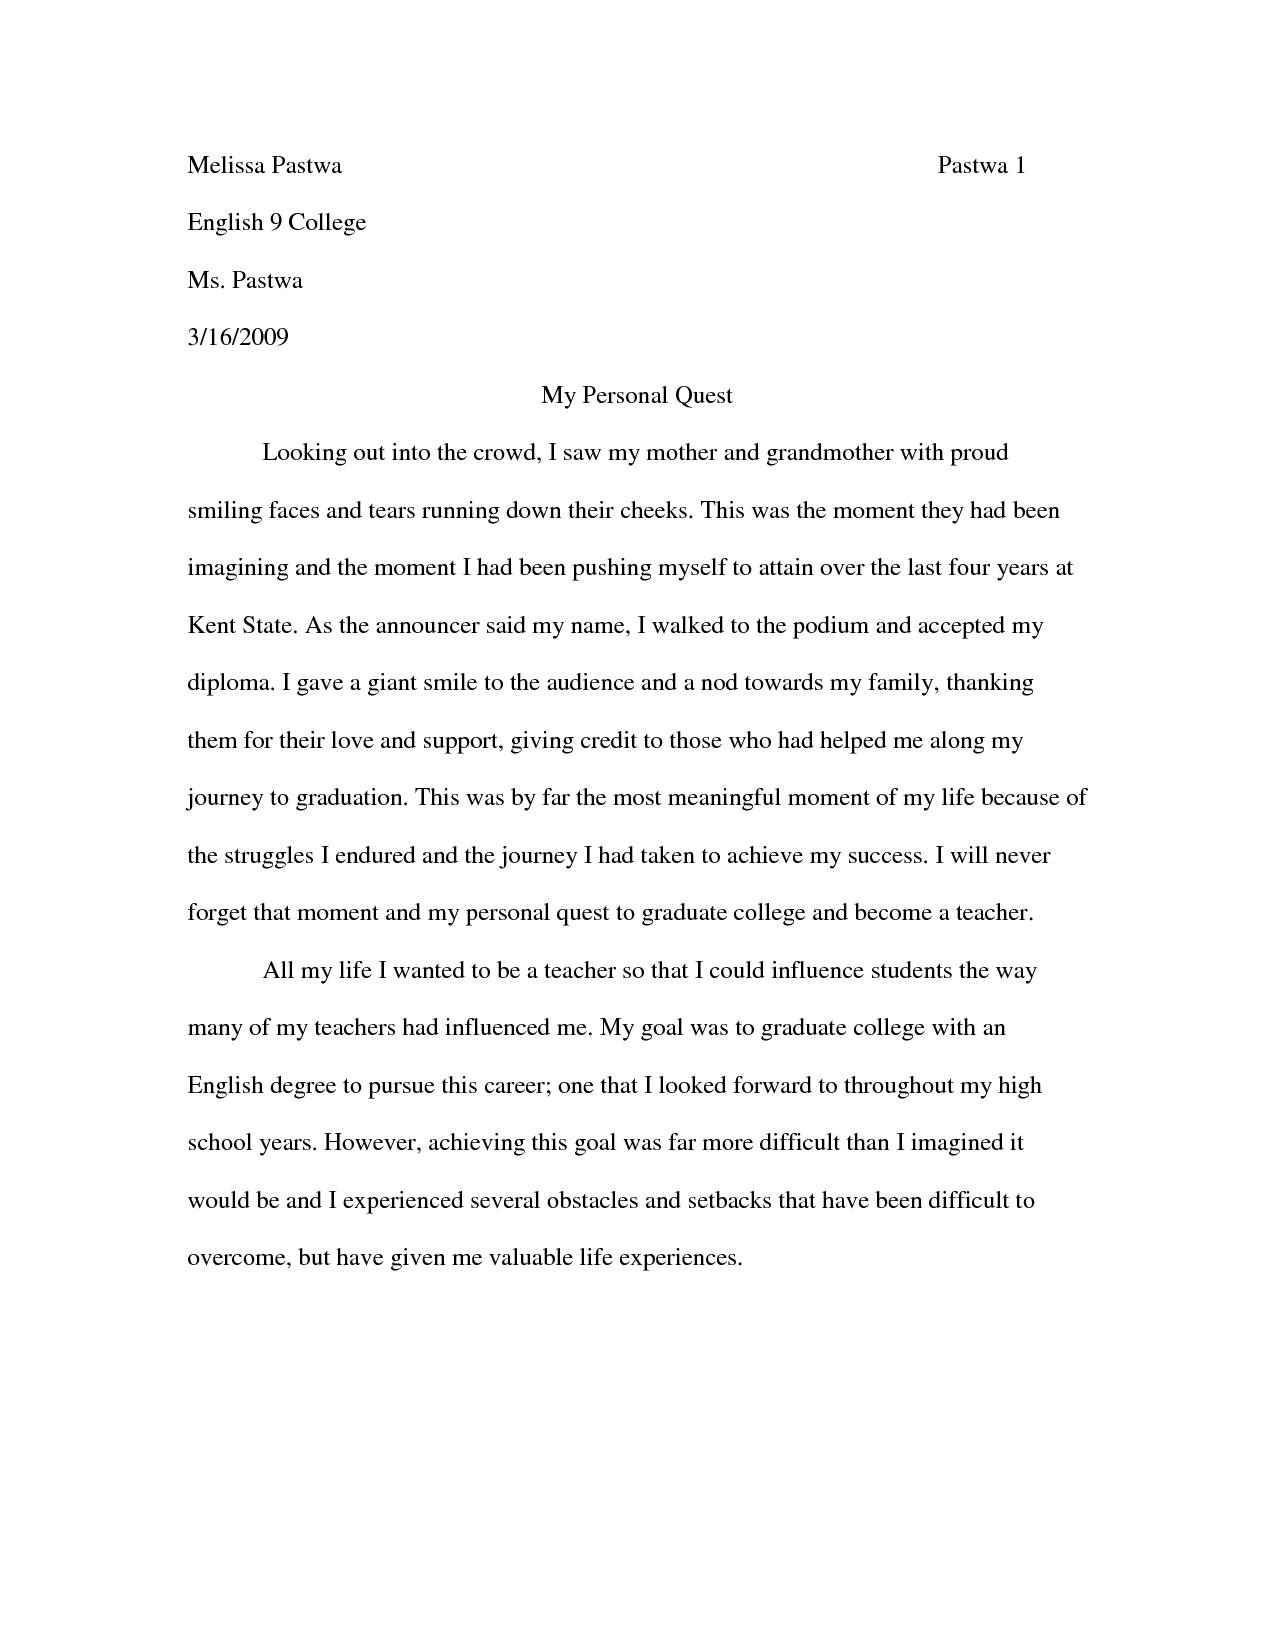 009 Narrative Essay Dialogue Example Of L Stirring Personal Examples For 2nd Graders Topics Grade 6 Middle School Pdf Full